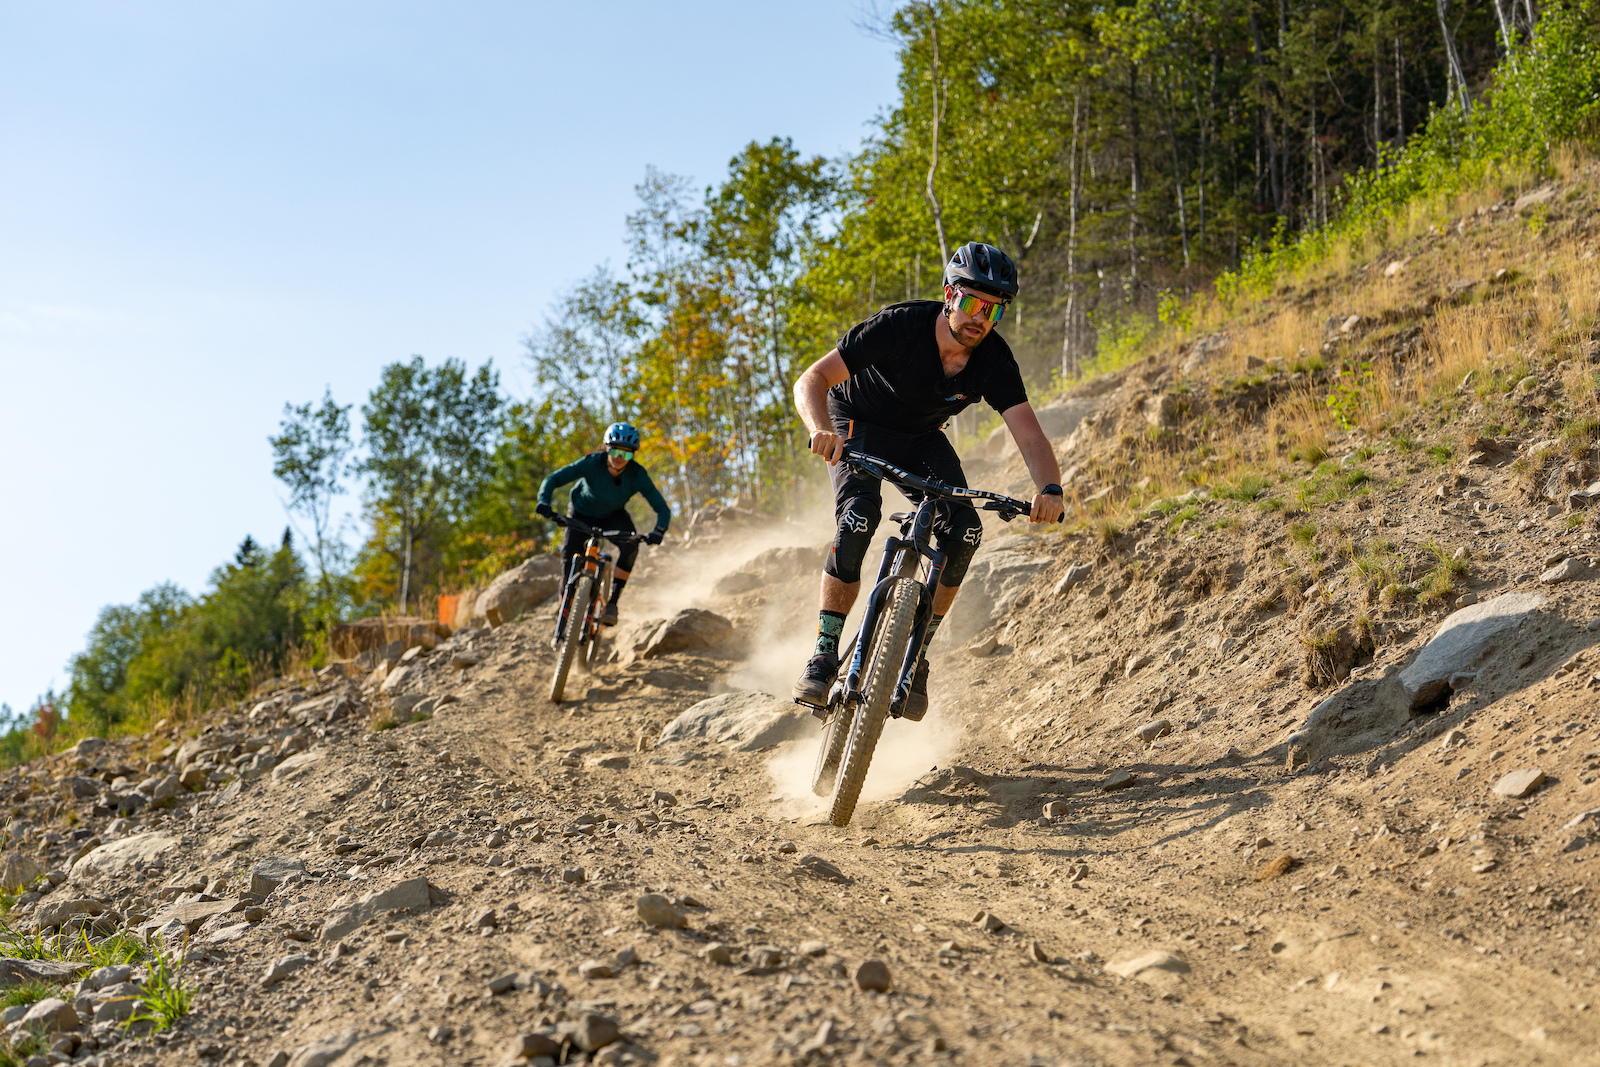 Mountain biking with Christina Chappetta and Jason Lucas at Le Massif de Charlevoix near Quebec City.